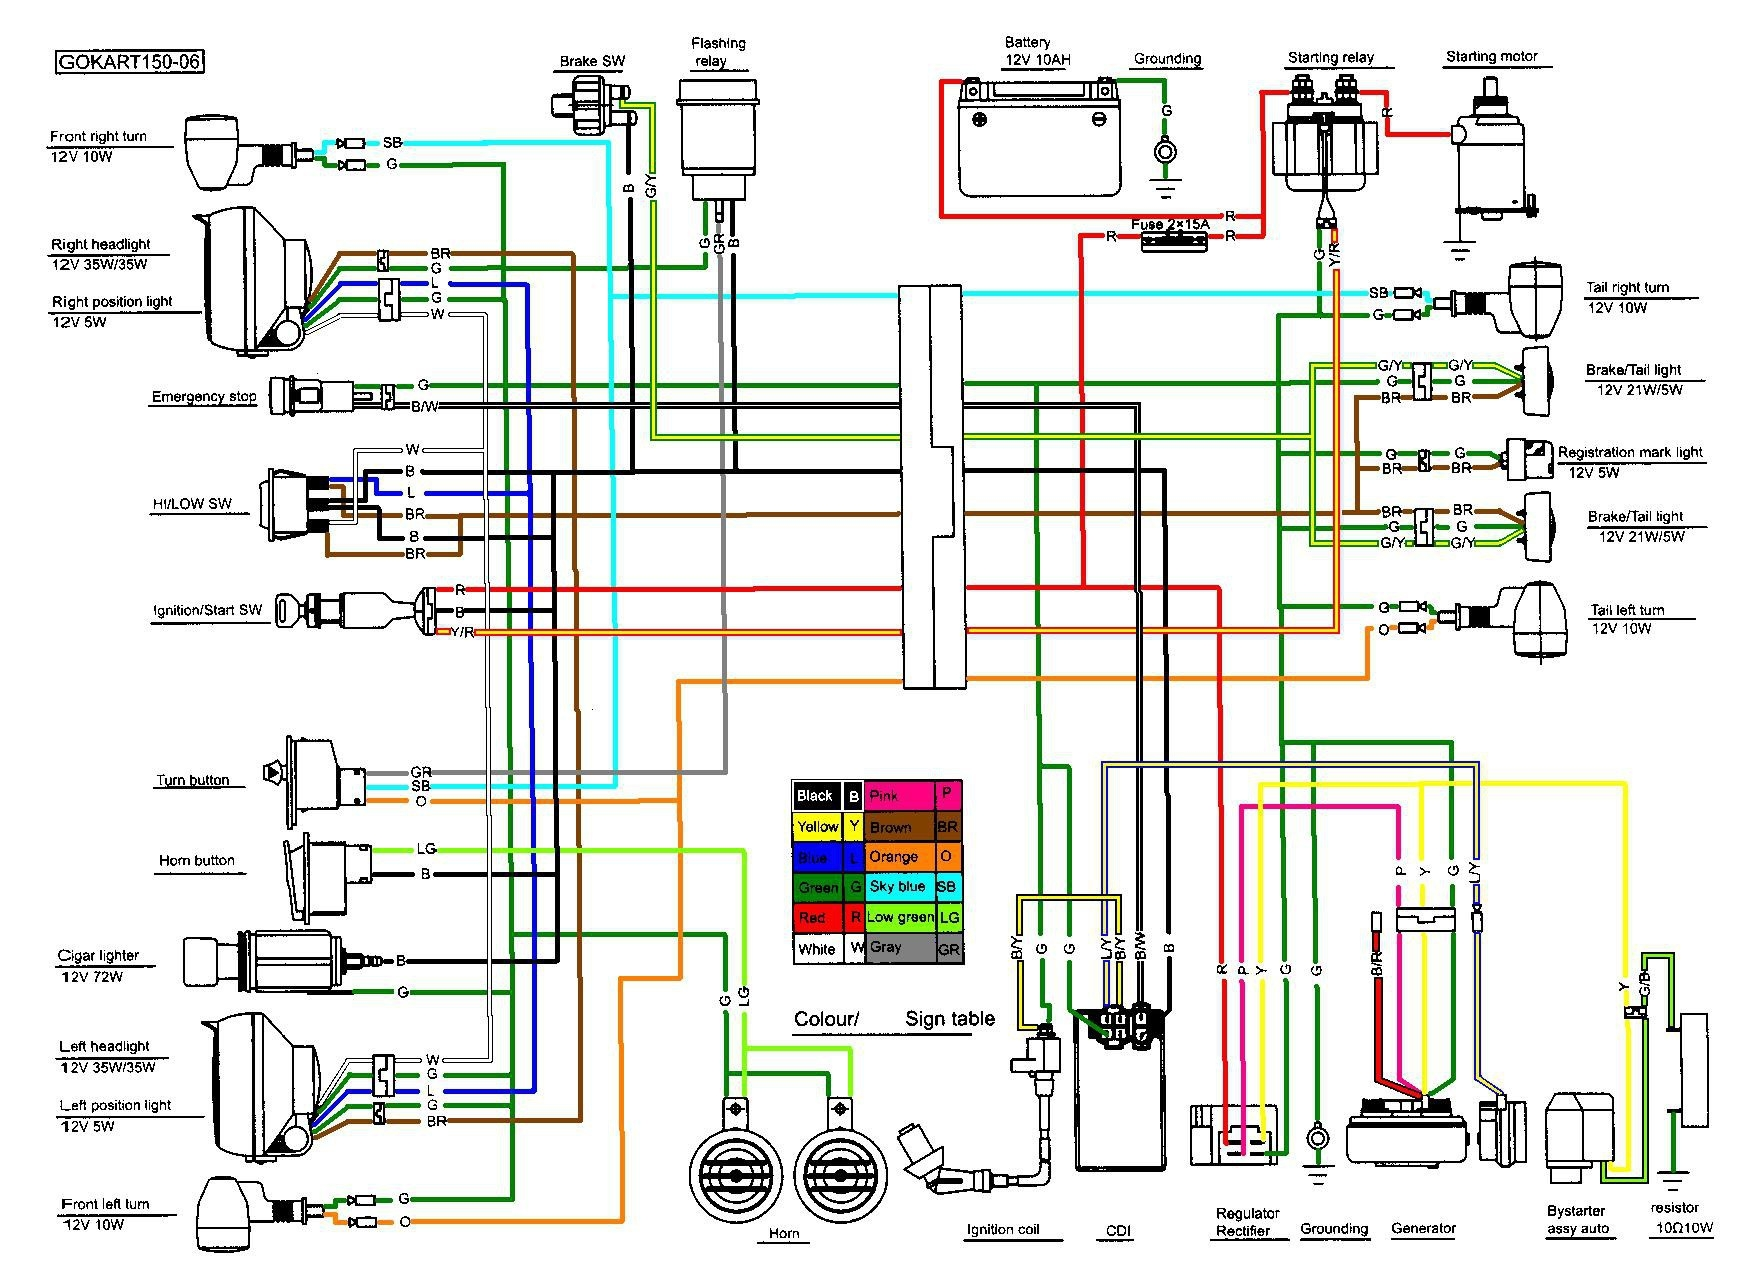 Scooter Wiring Diagrams - G2 wiring diagram18.be.institut-triskell-de-diamant.fr